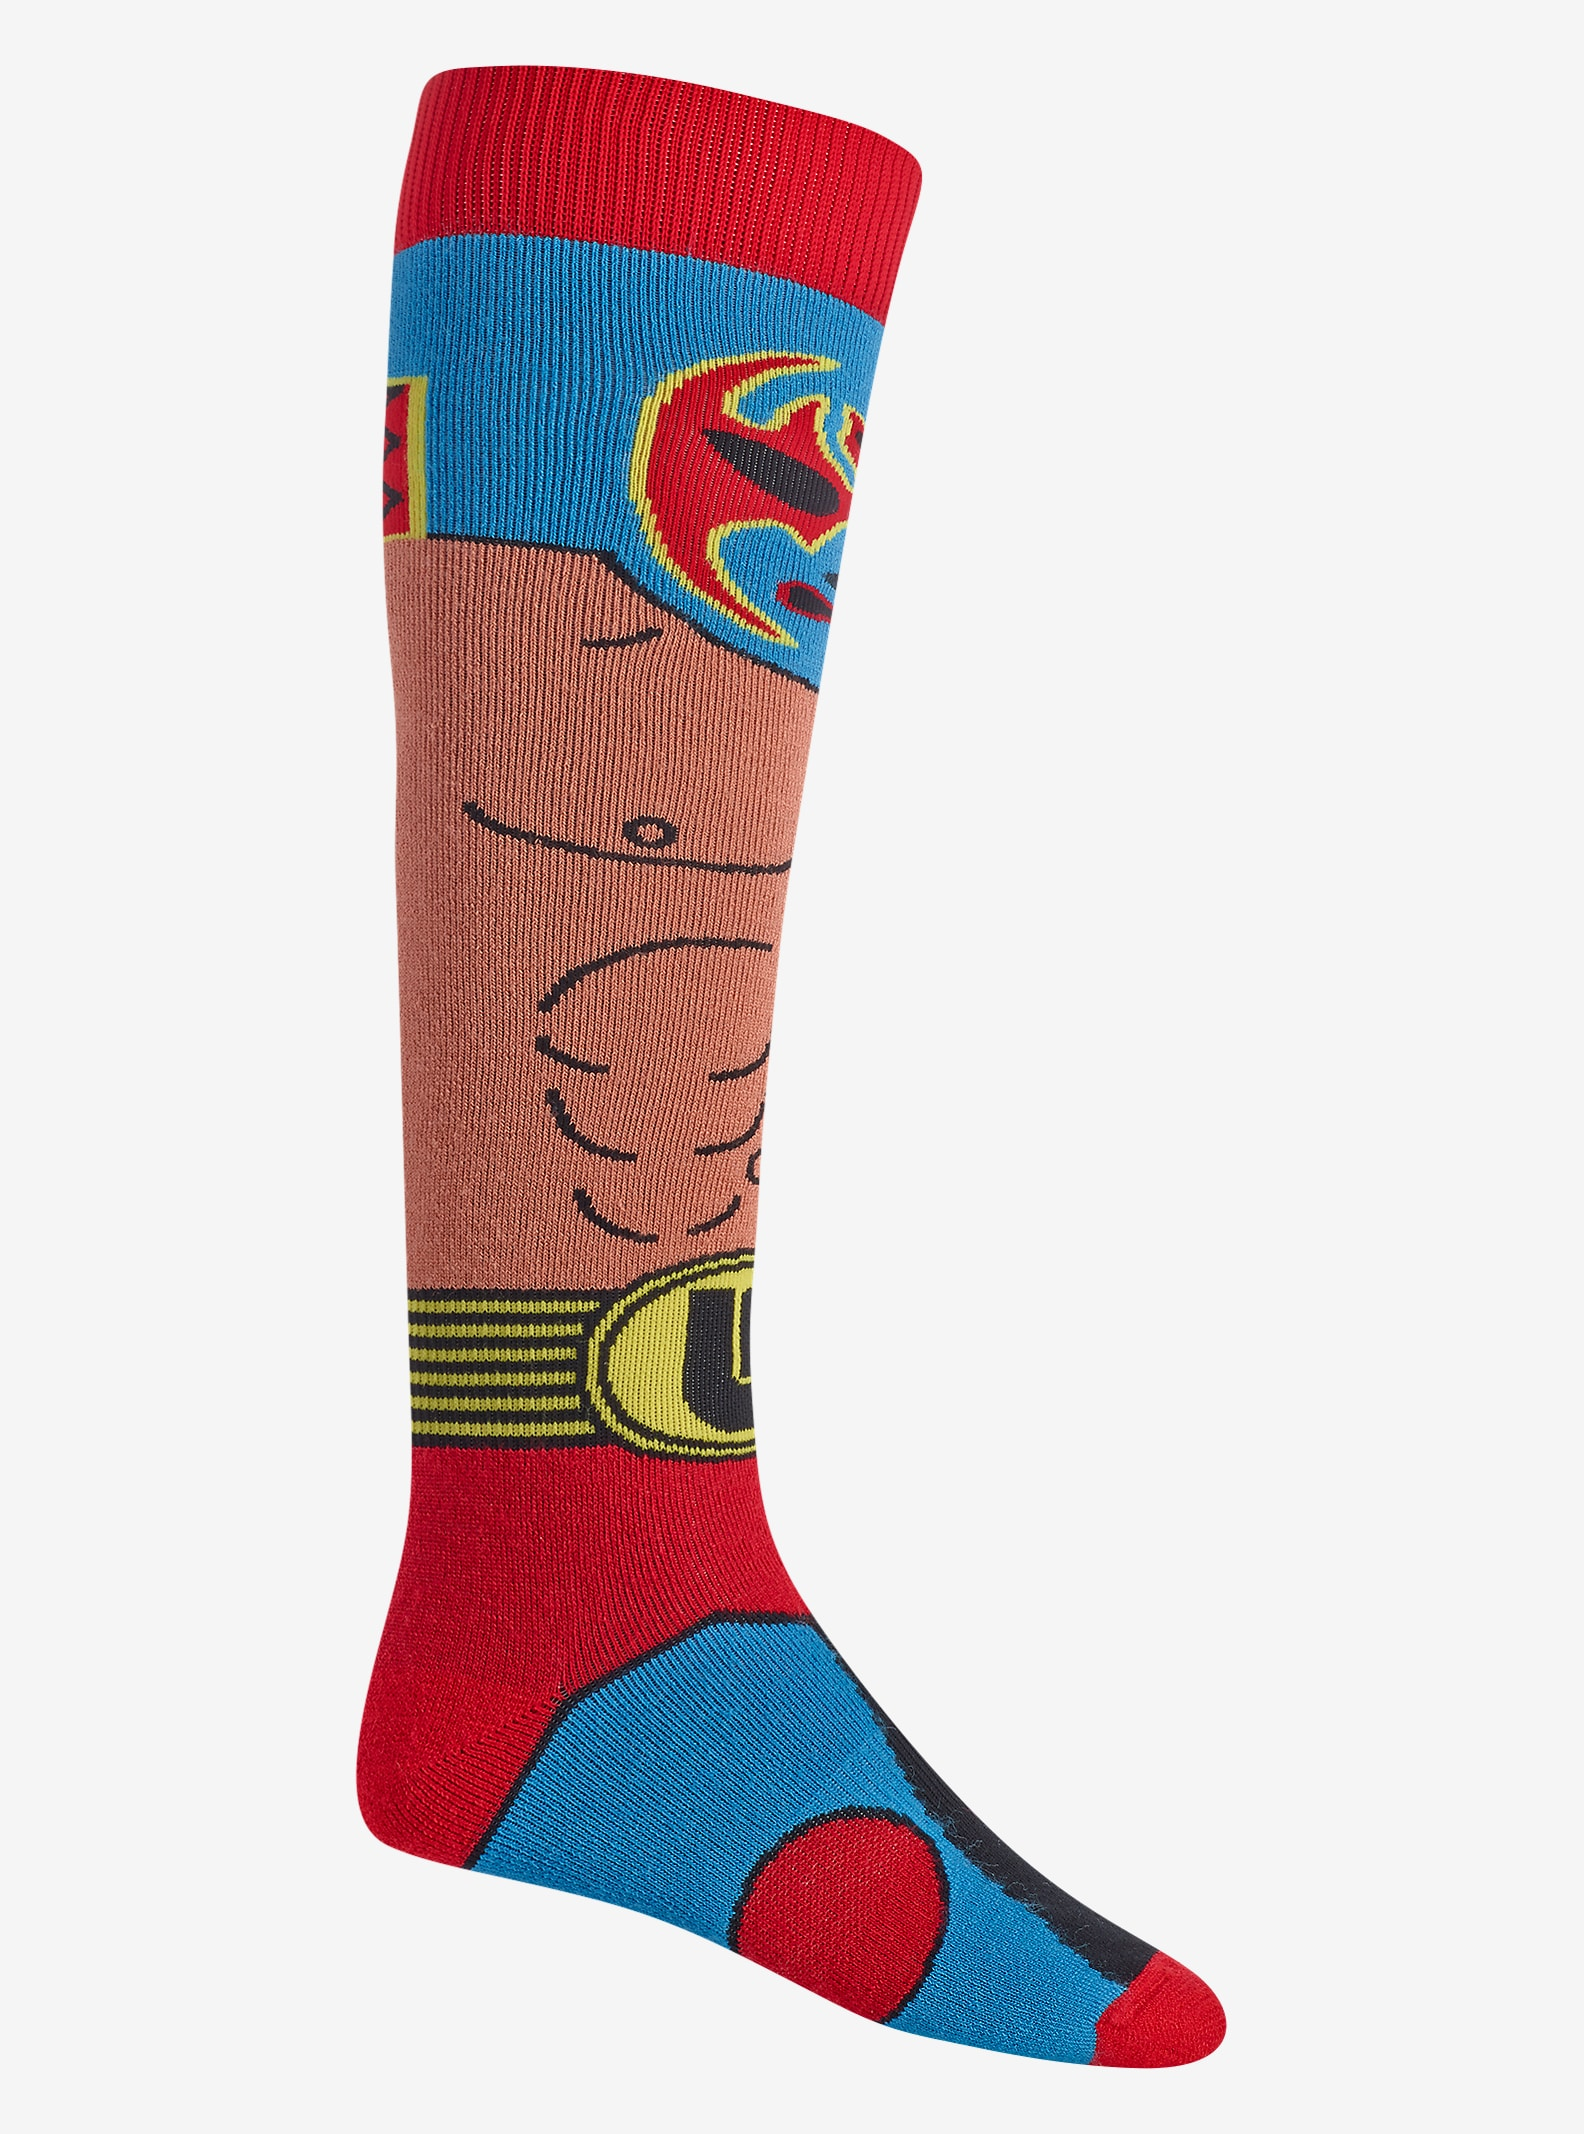 Burton Party Sock shown in Luchador